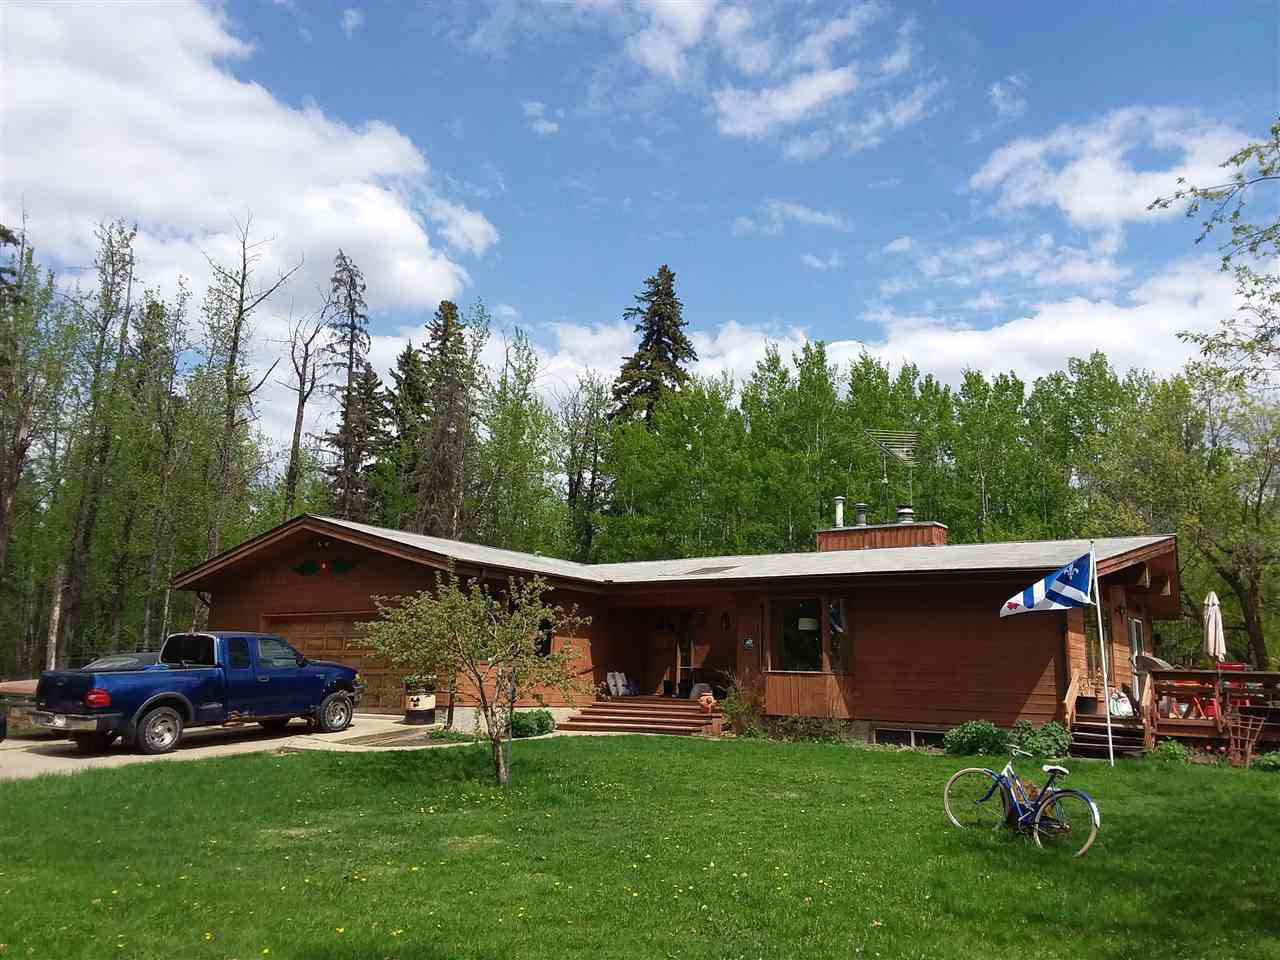 Main Photo: 53003 RANGE RD 271: Spruce Grove House for sale : MLS®# E4158720